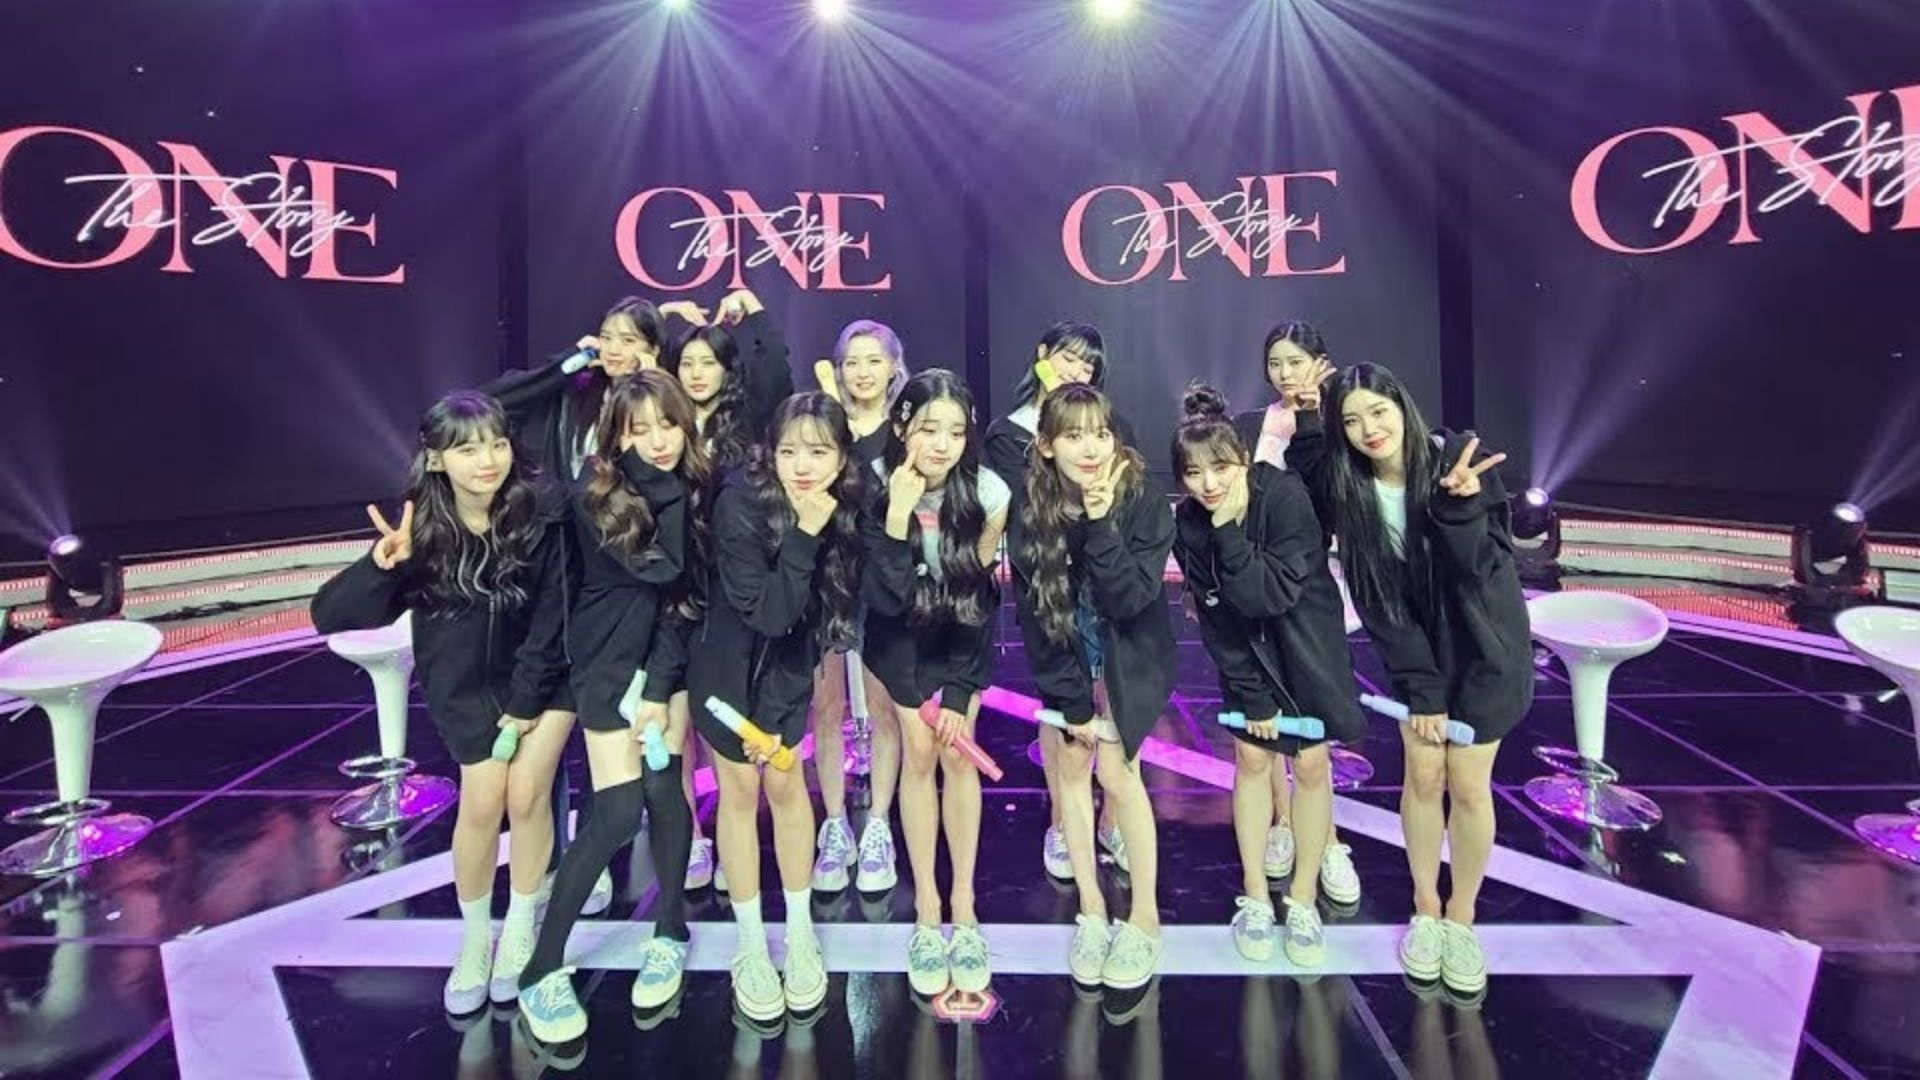 Why Is IZ*ONE Disbanded? The Real Story Behind